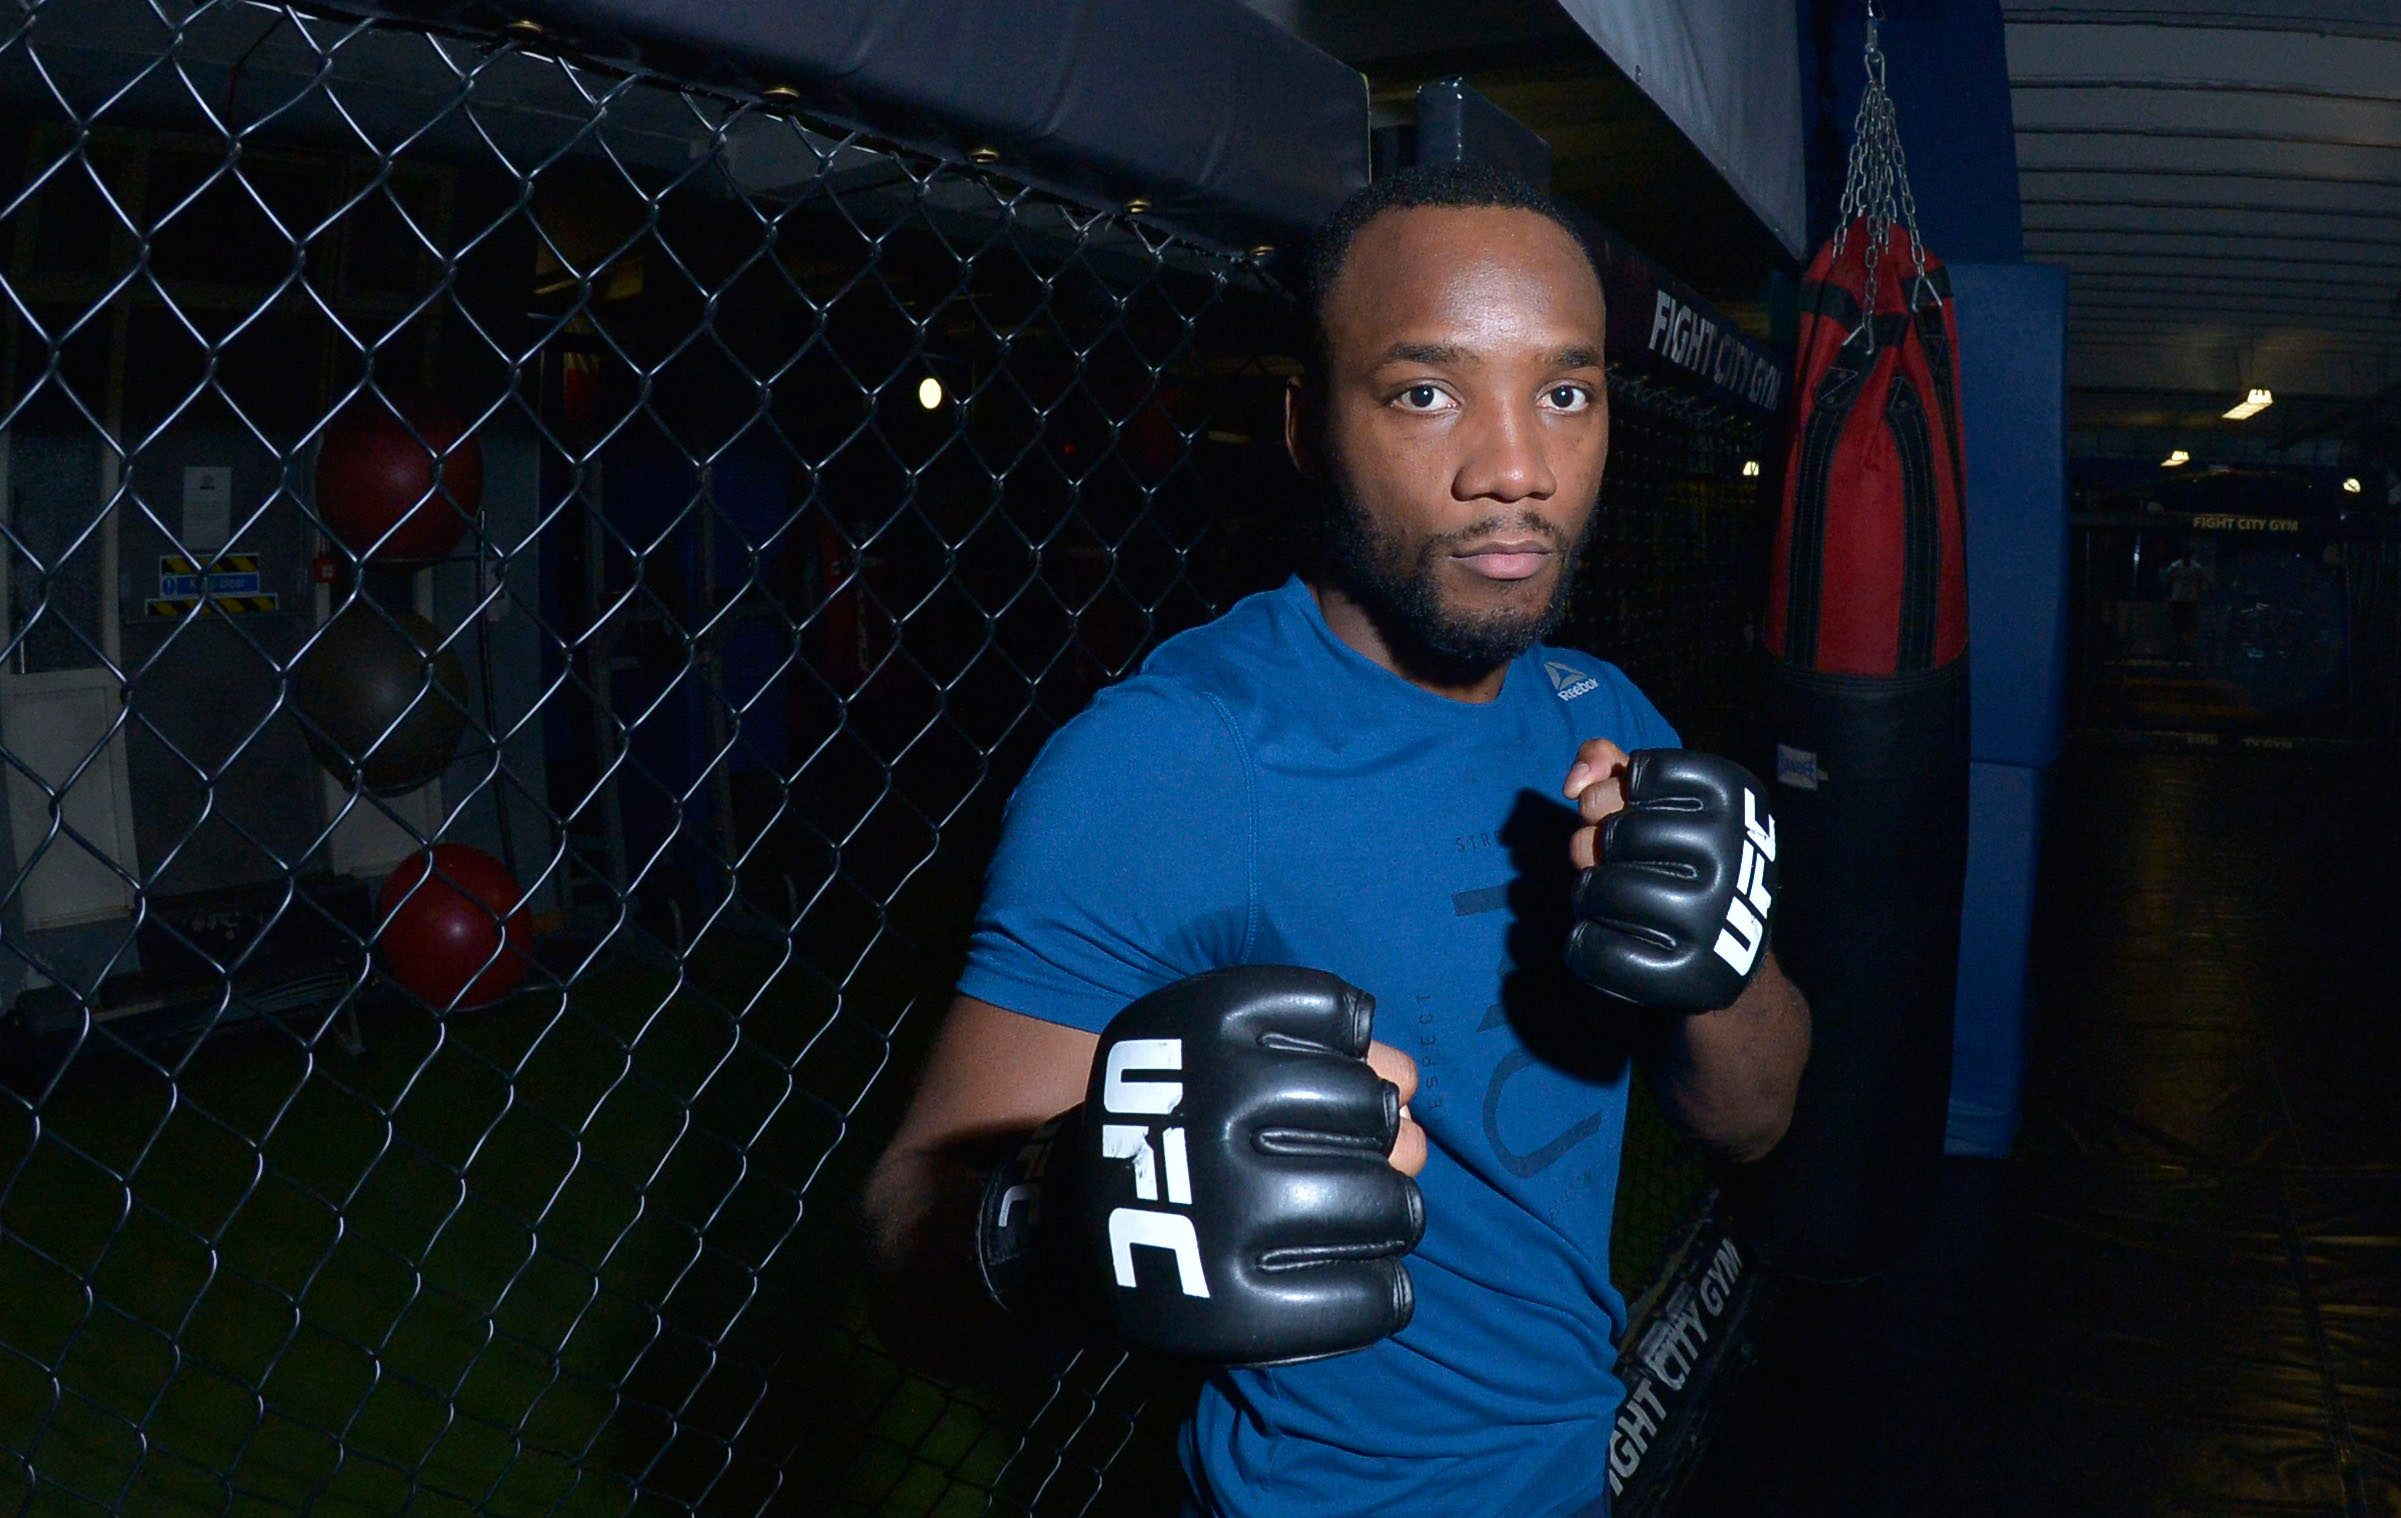 UFC star Leon Edwards was attacked backstage at UFC London